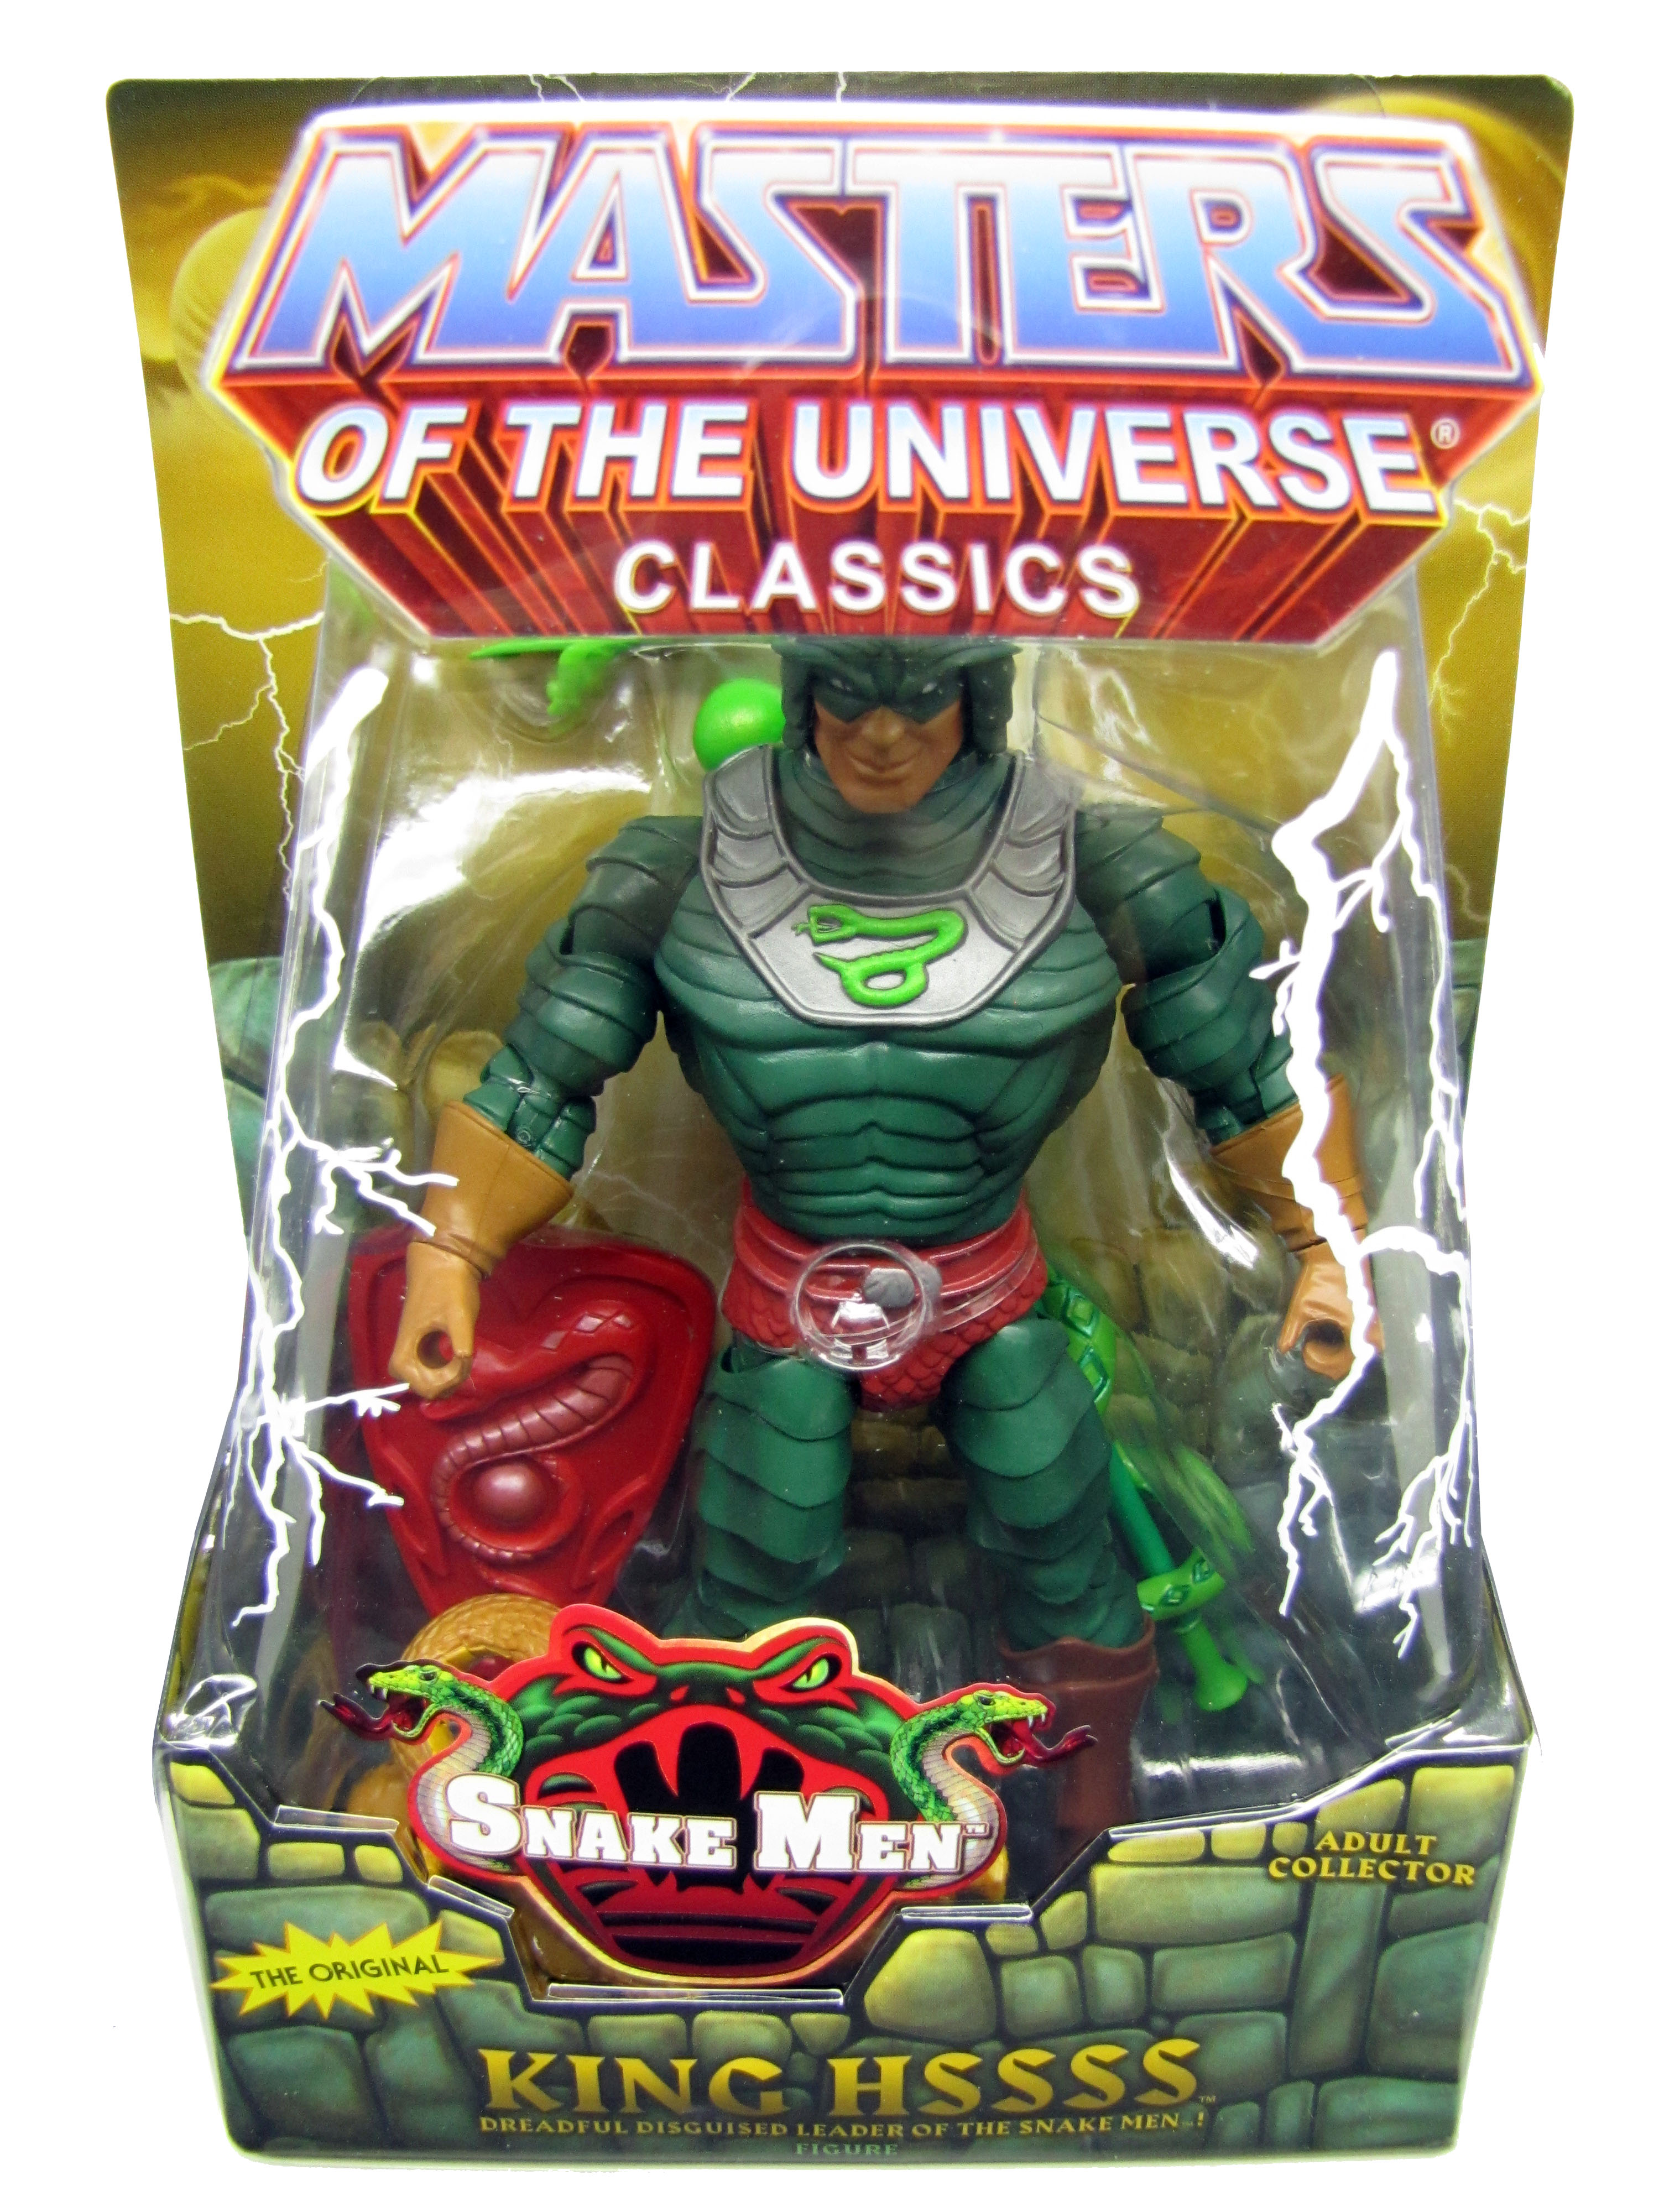 2011 Masters of the Universe Classics King Hssss Sealed NEW